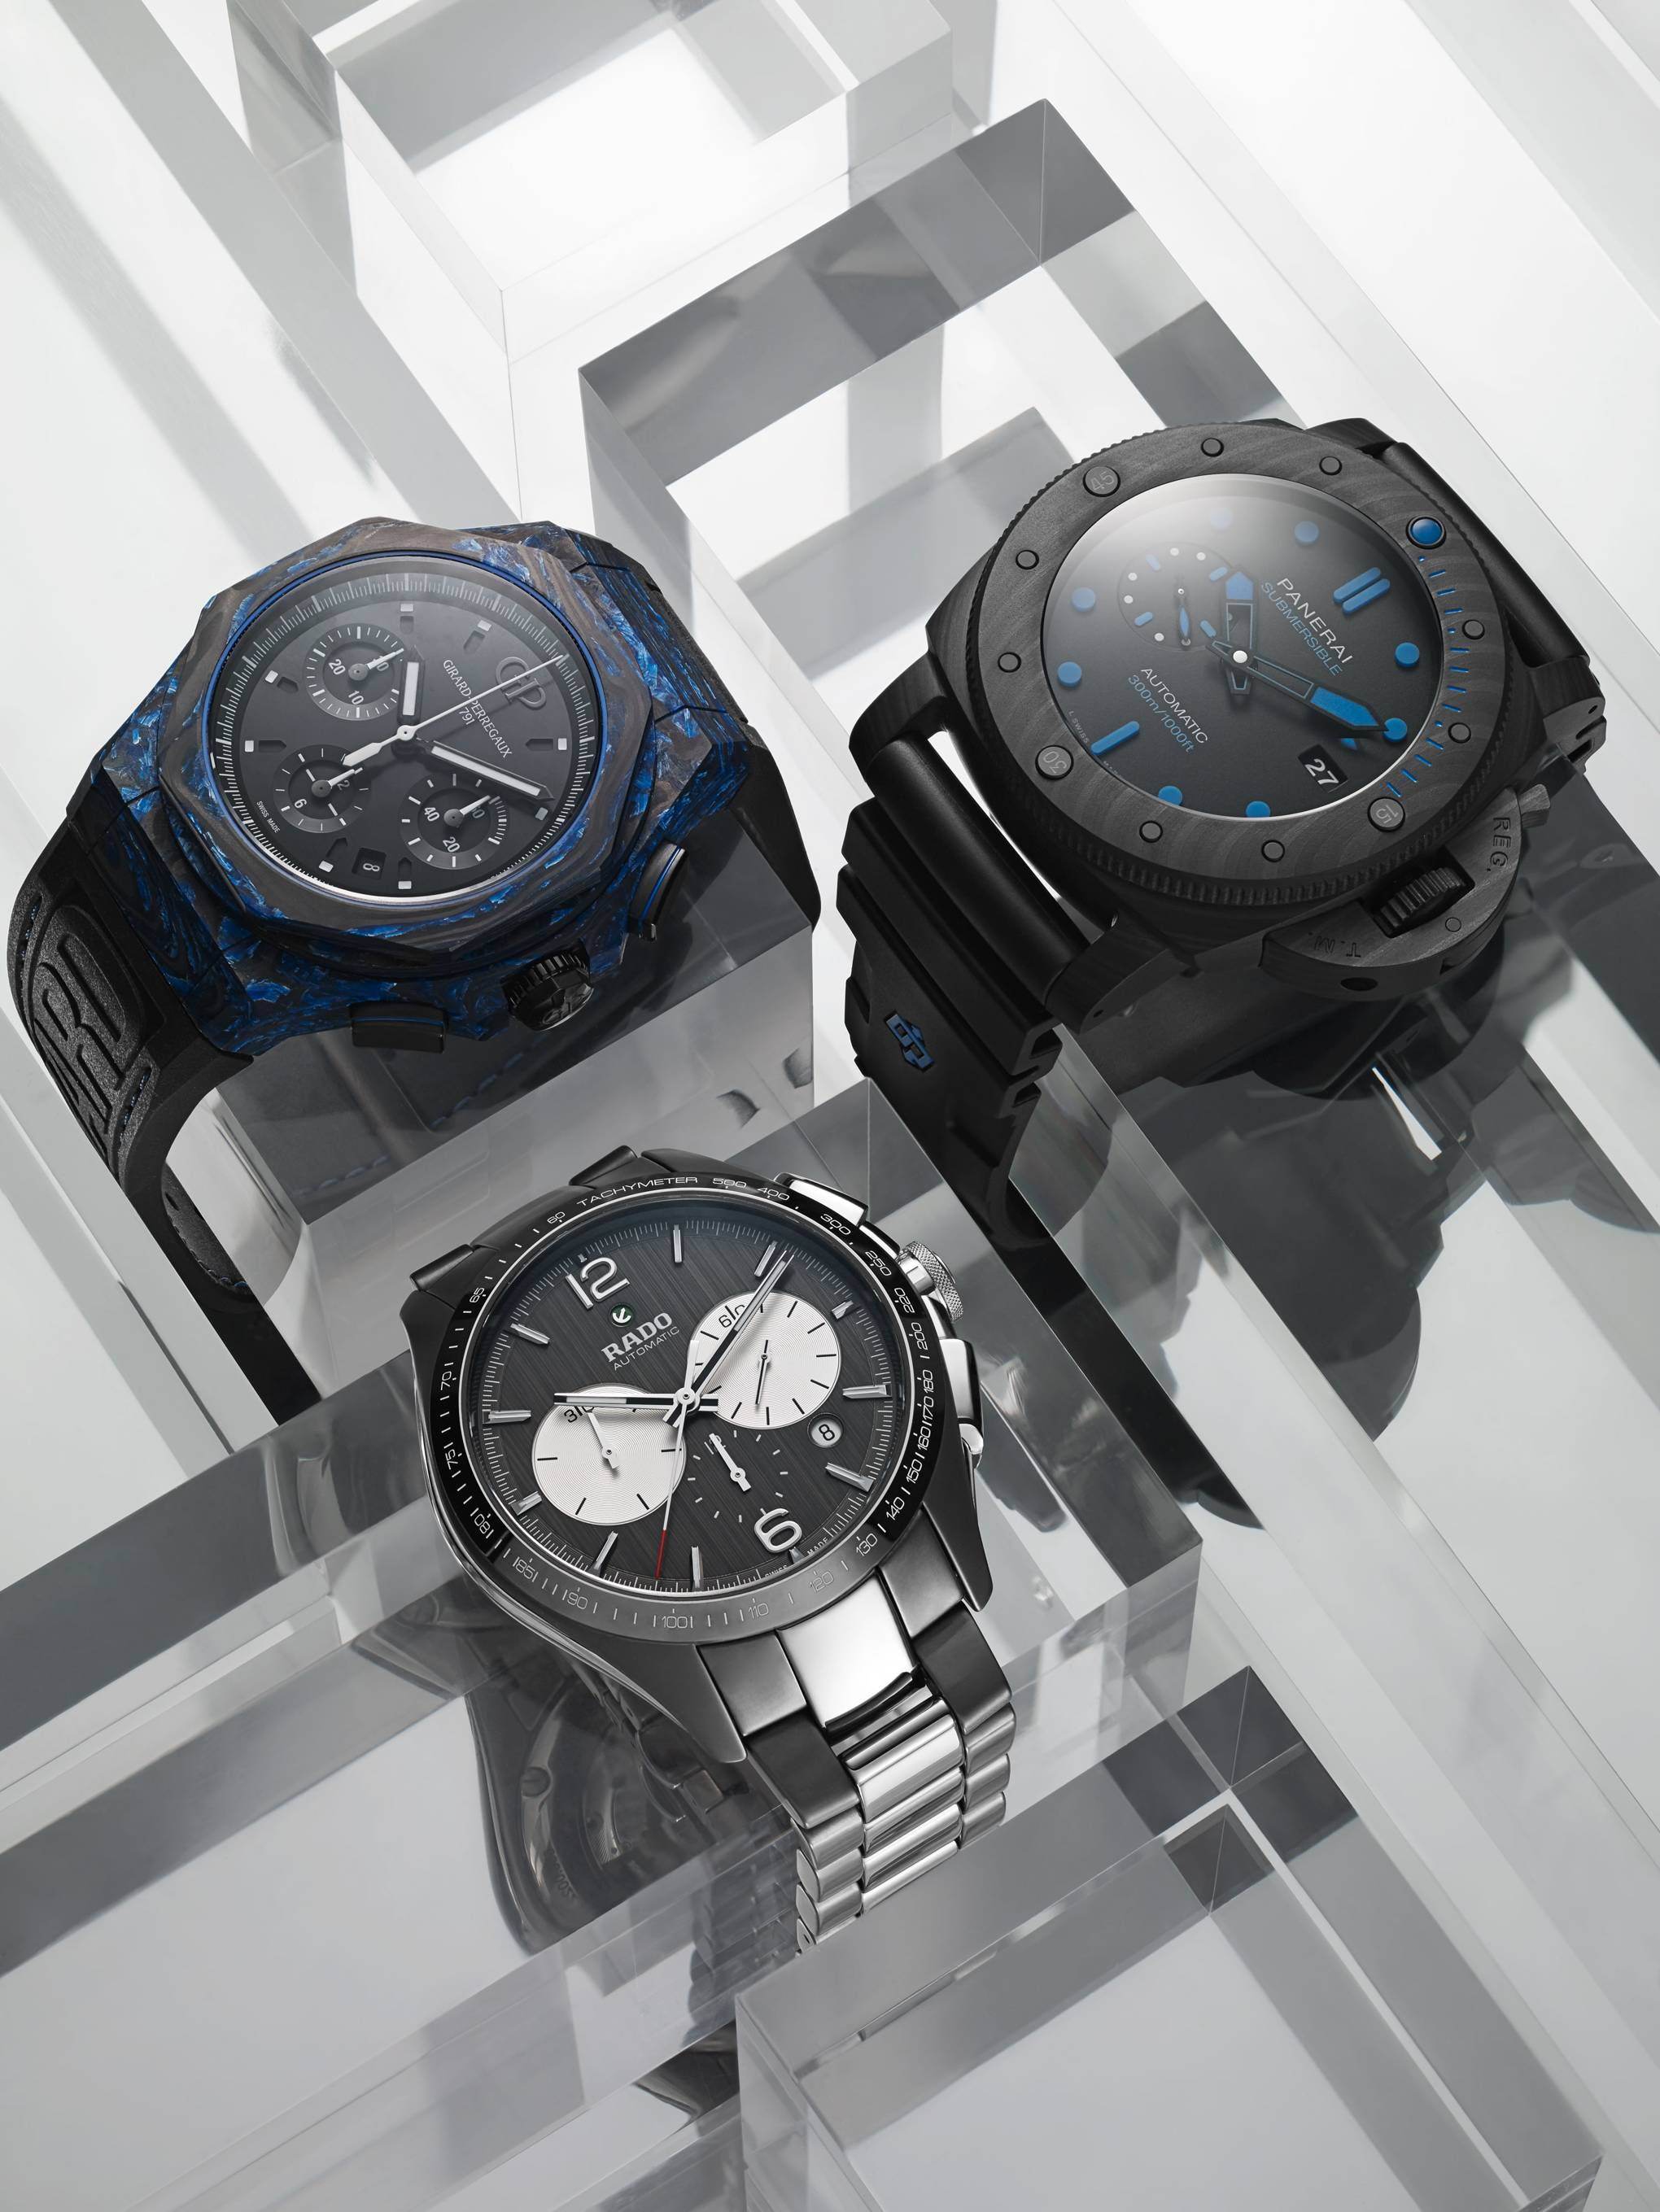 Radical new materials are fueling a new wave of watch